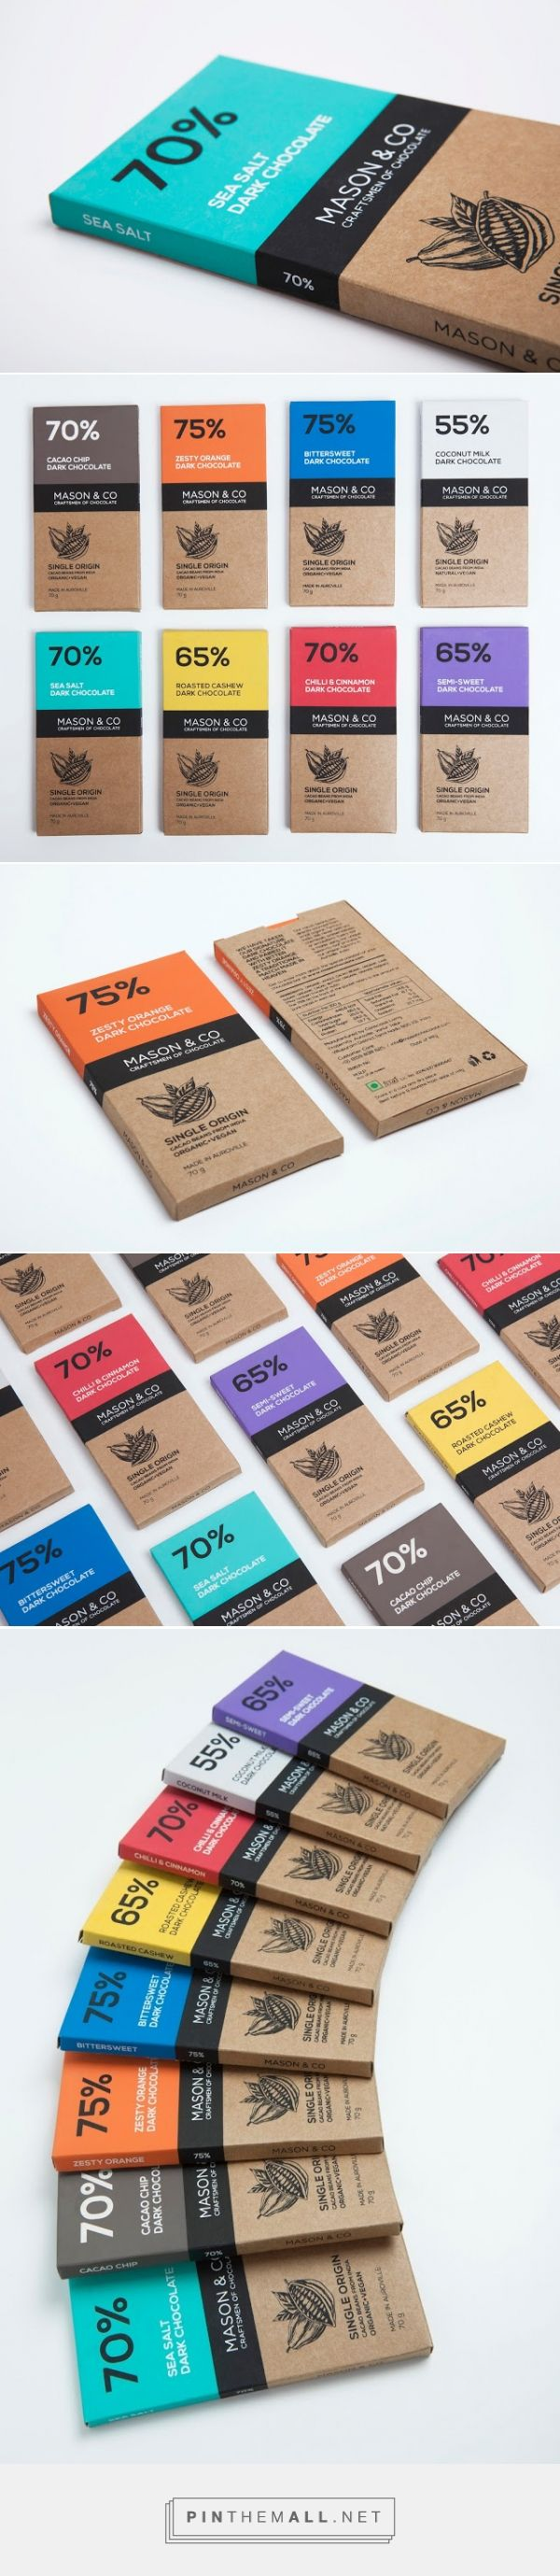 Mason & Co Chocolate Bars